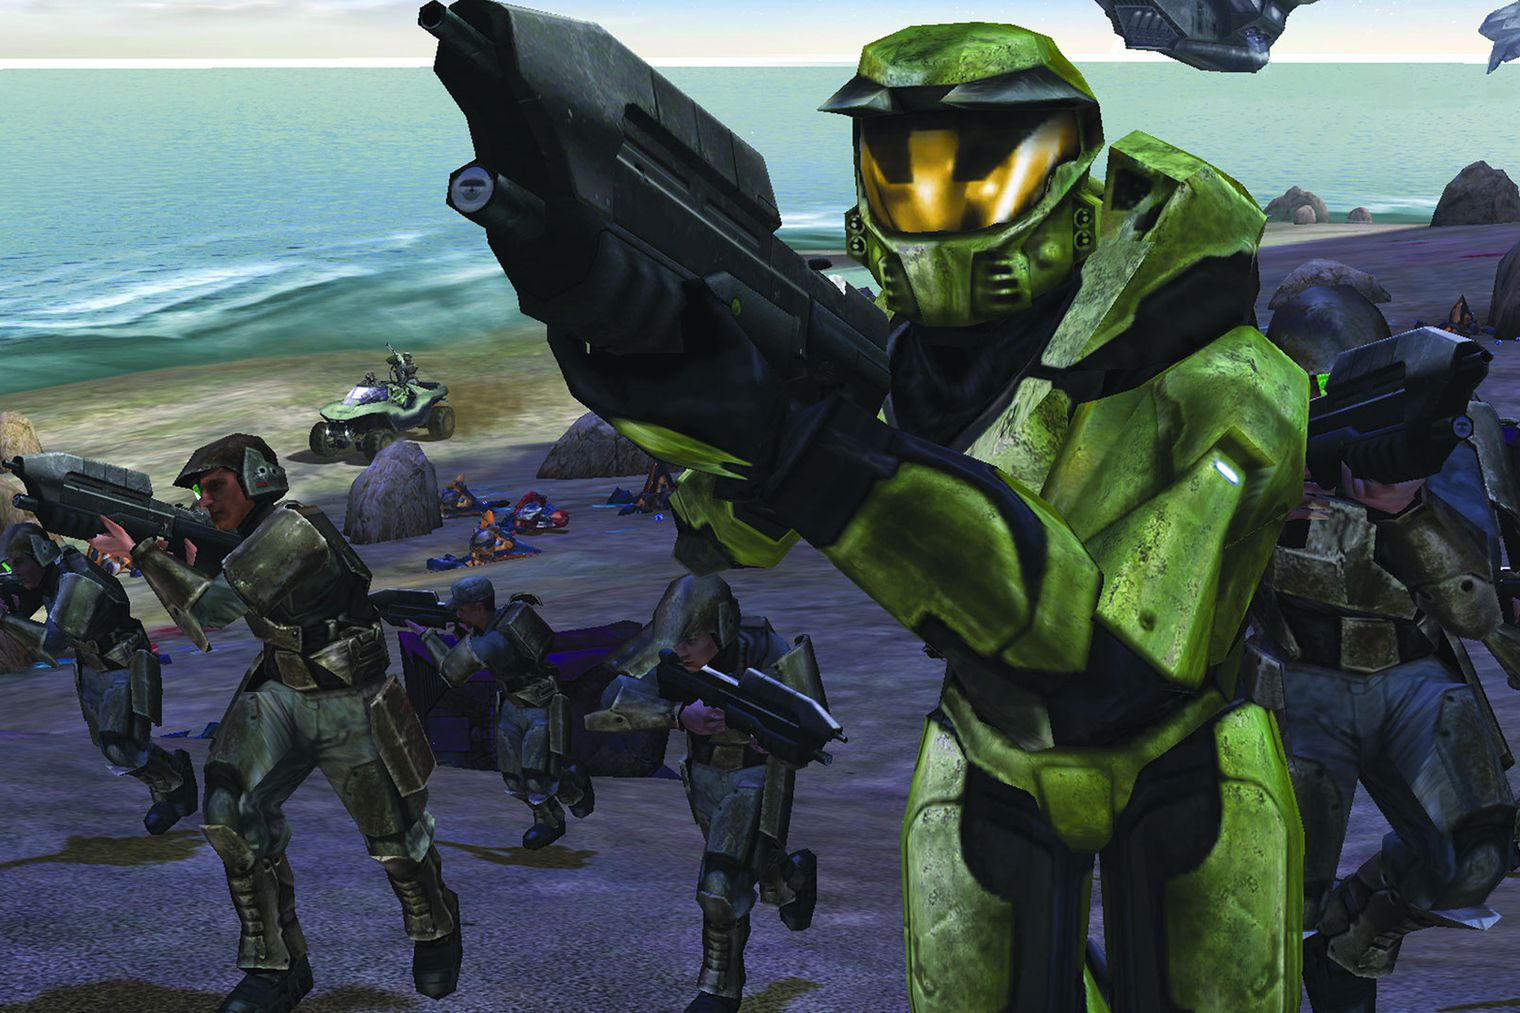 Beta tests for Halo: Combat Evolved on PC coming soon - MSPoweruser